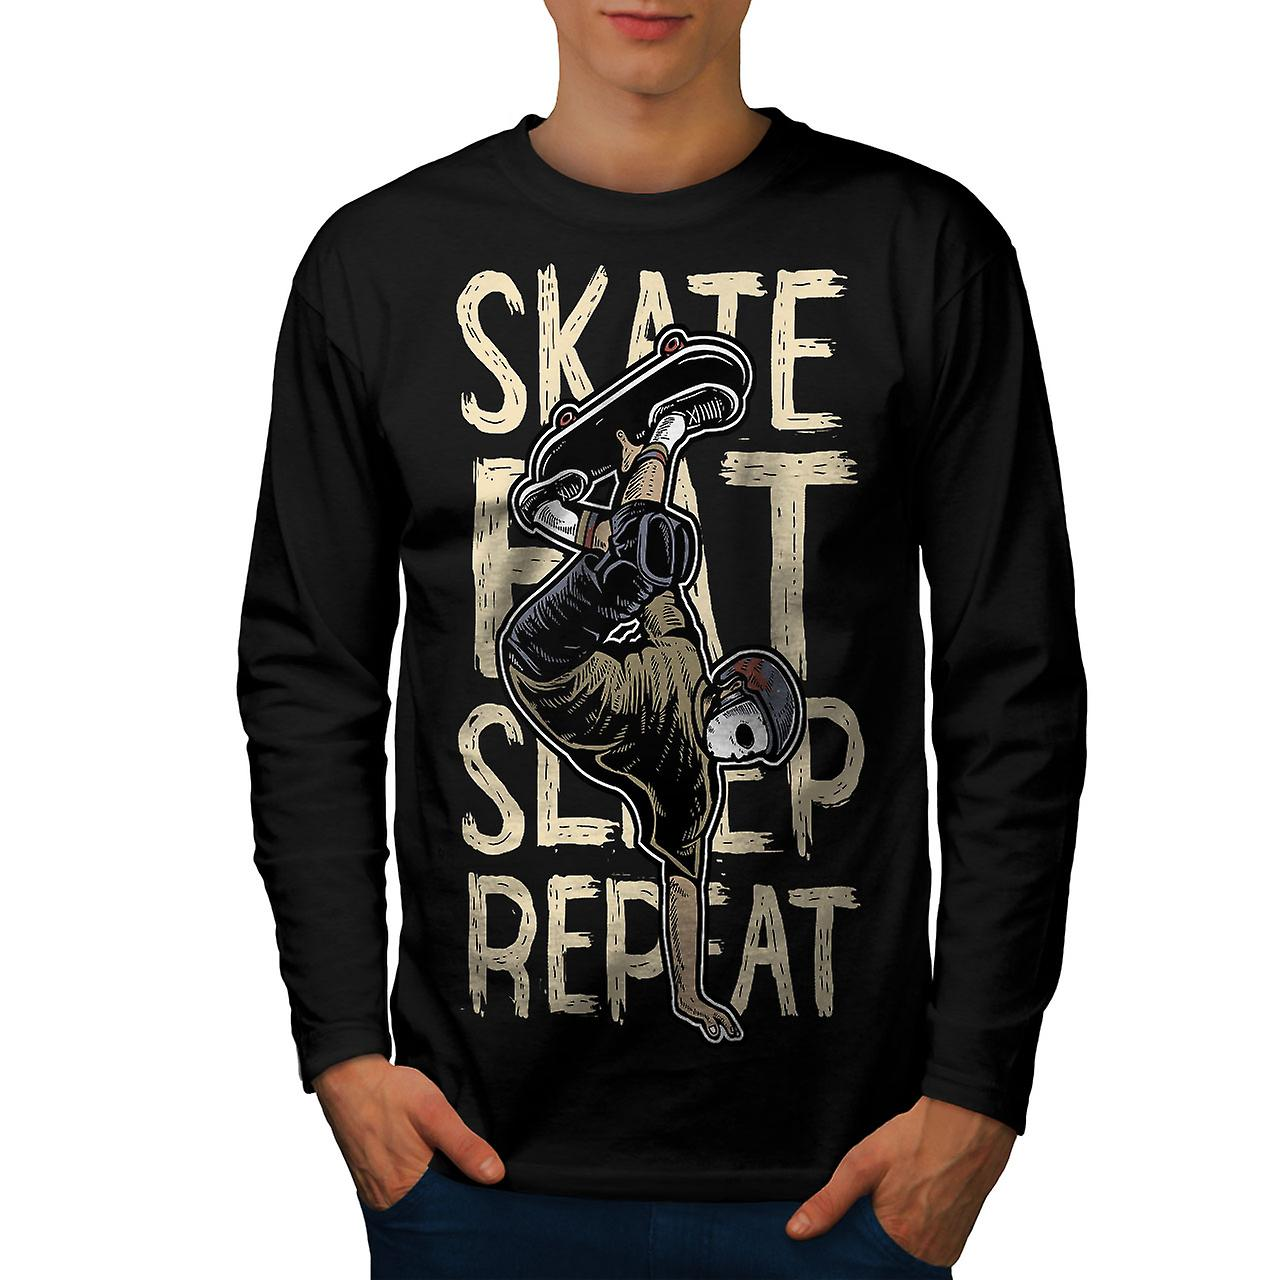 Enterprise Rent A Car Rugby Uk: Skate Eat Sleep Men BlackLong Sleeve T-shirt